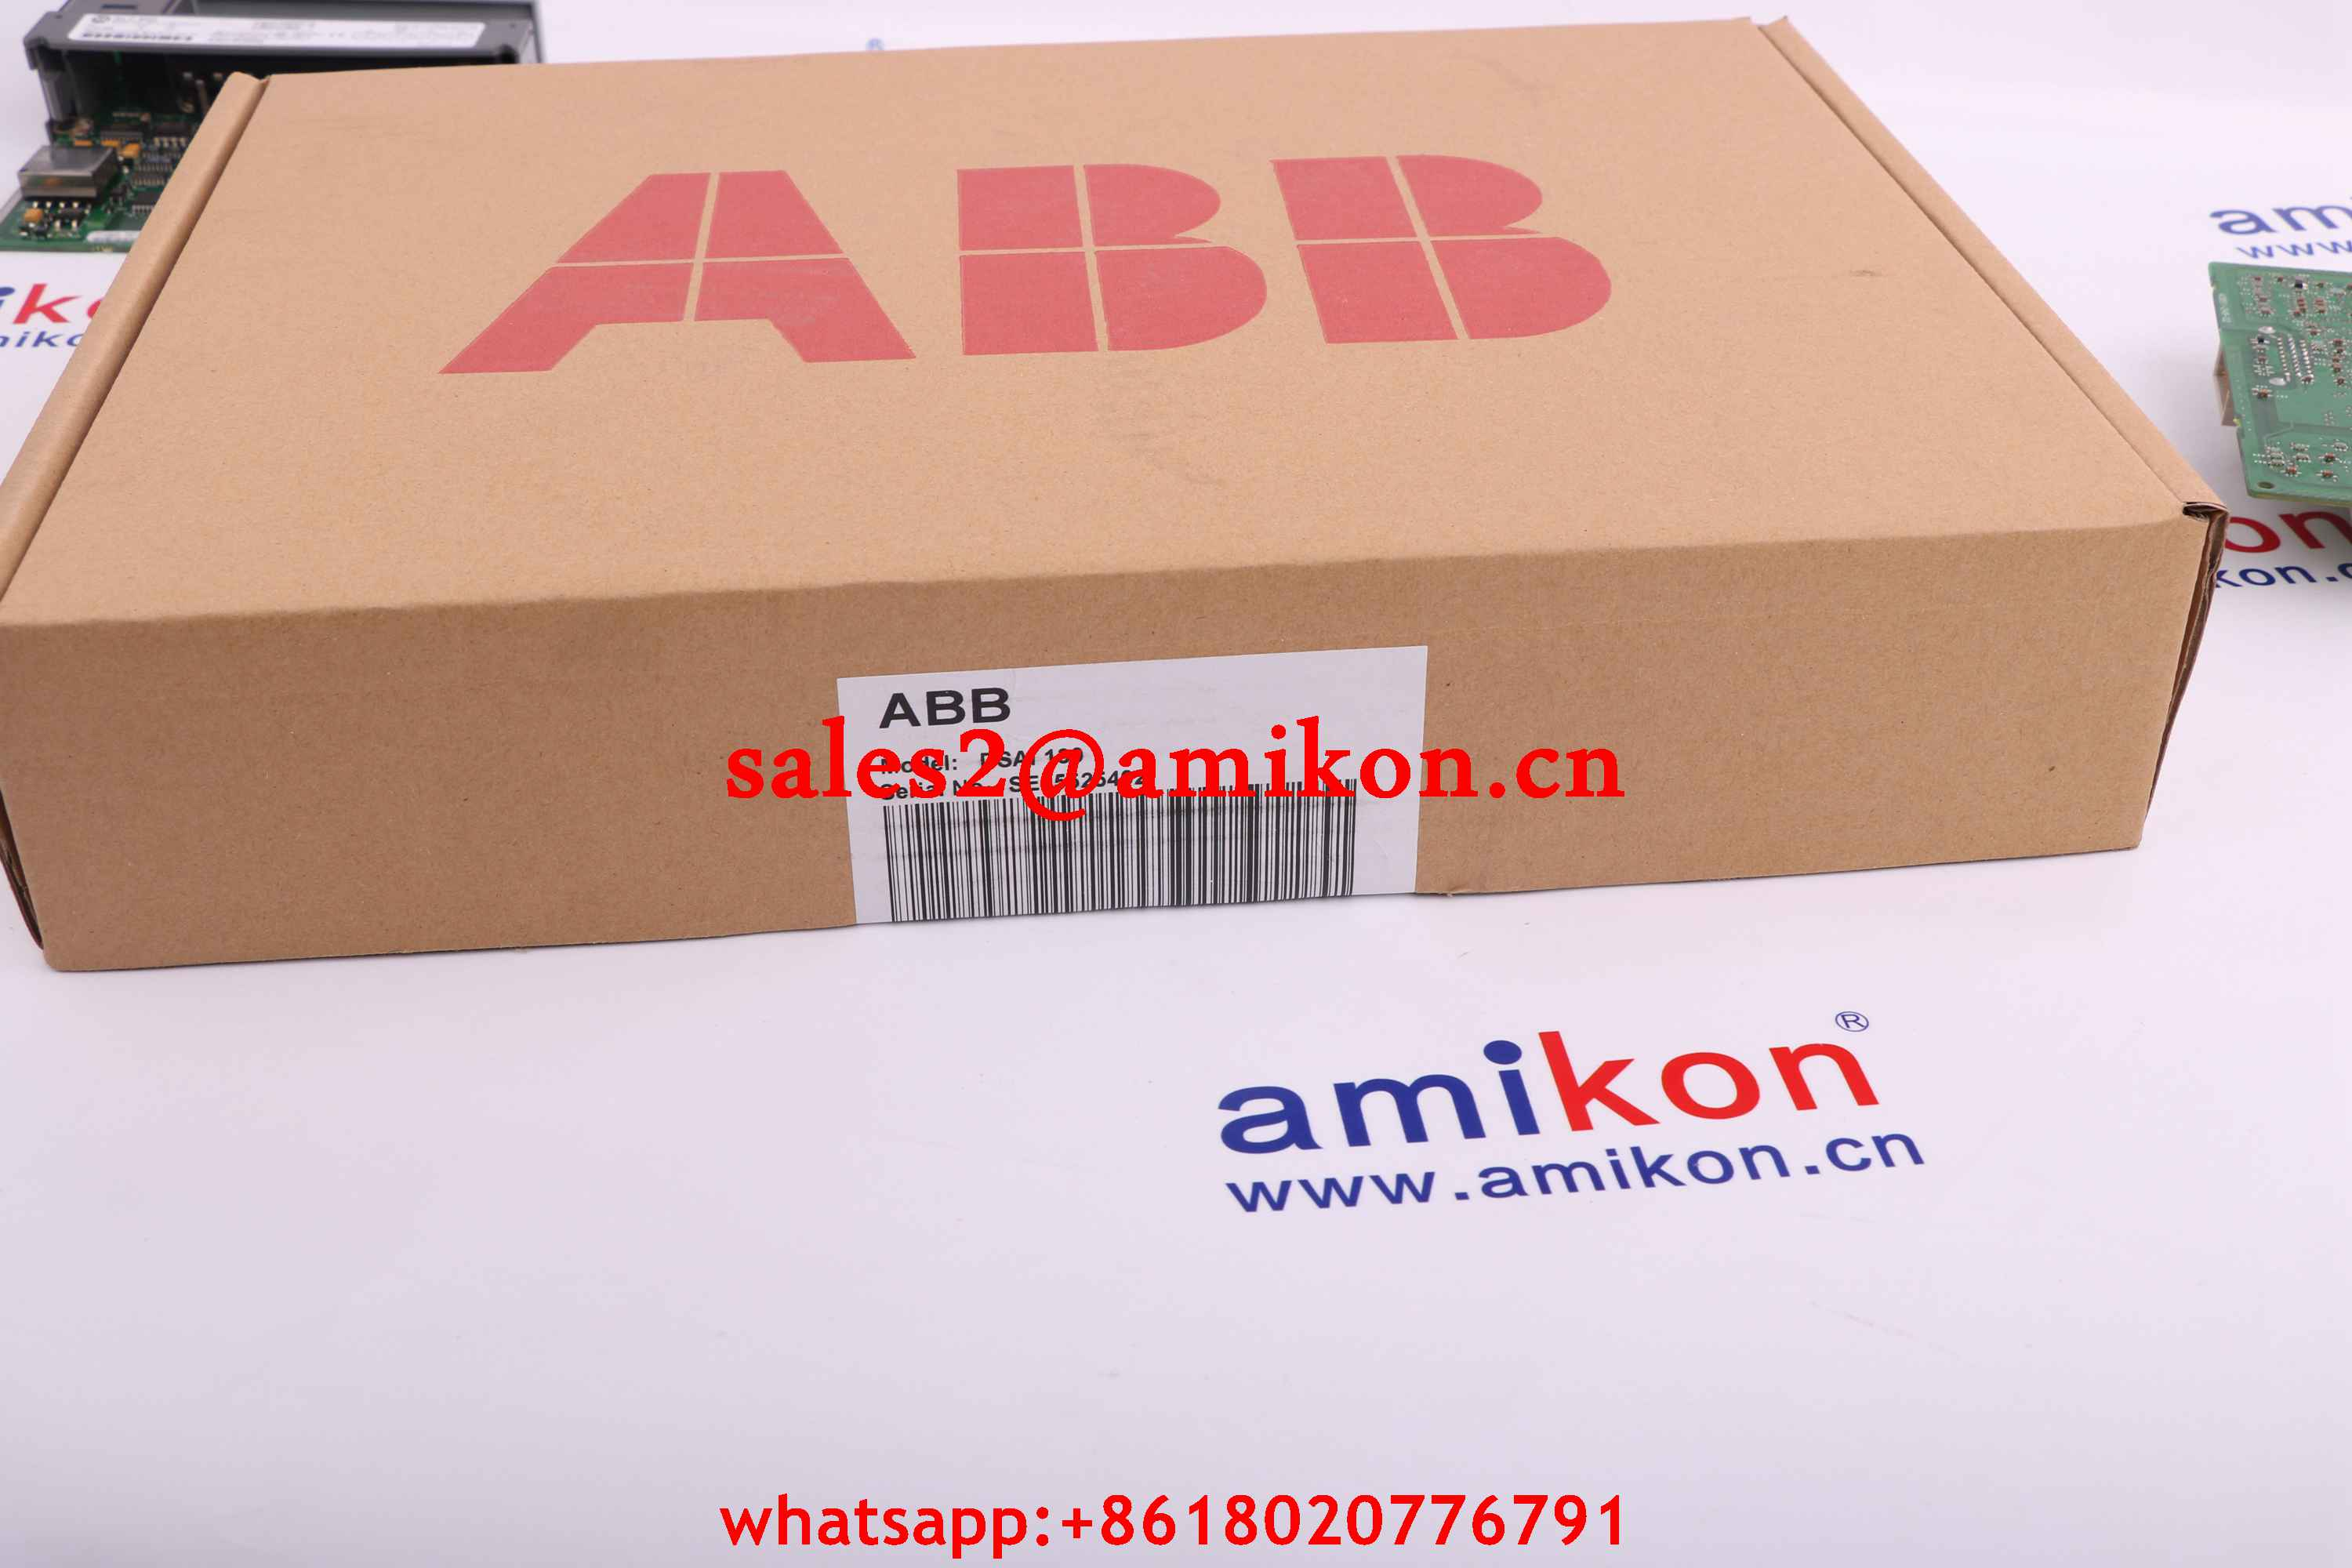 57360001-U DSMB 124 Semiconductor memory board ABB | Robot spare parts | PLC DCS Parts T/T 100% New In stock